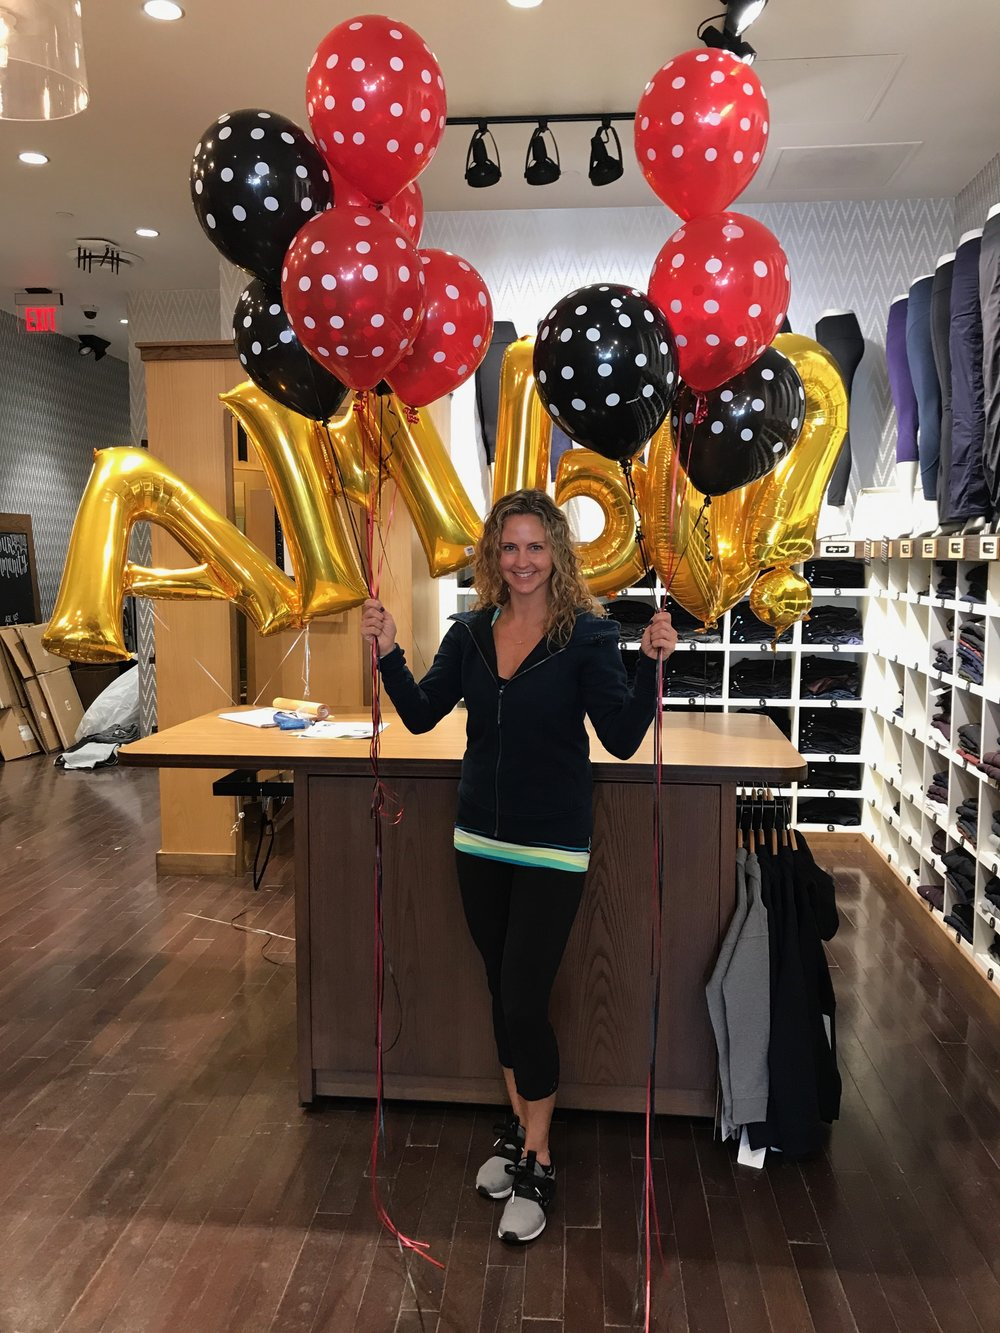 Congratulations Emily Schneider, for becoming Lululemon's most recent Ambassador! -